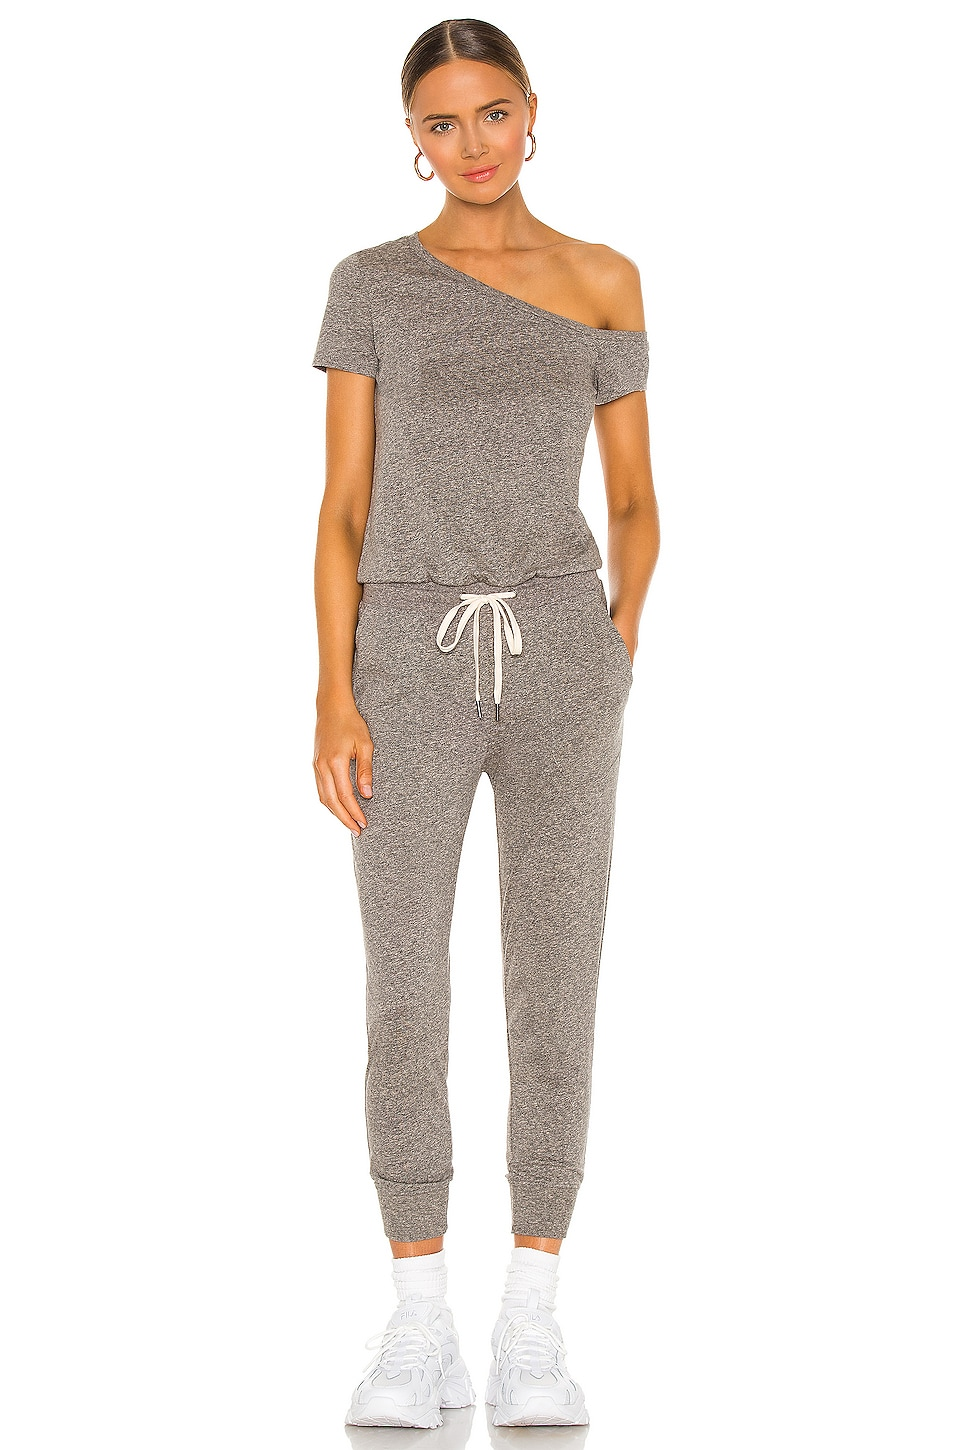 n:philanthropy Britton Jumpsuit in Heather Grey